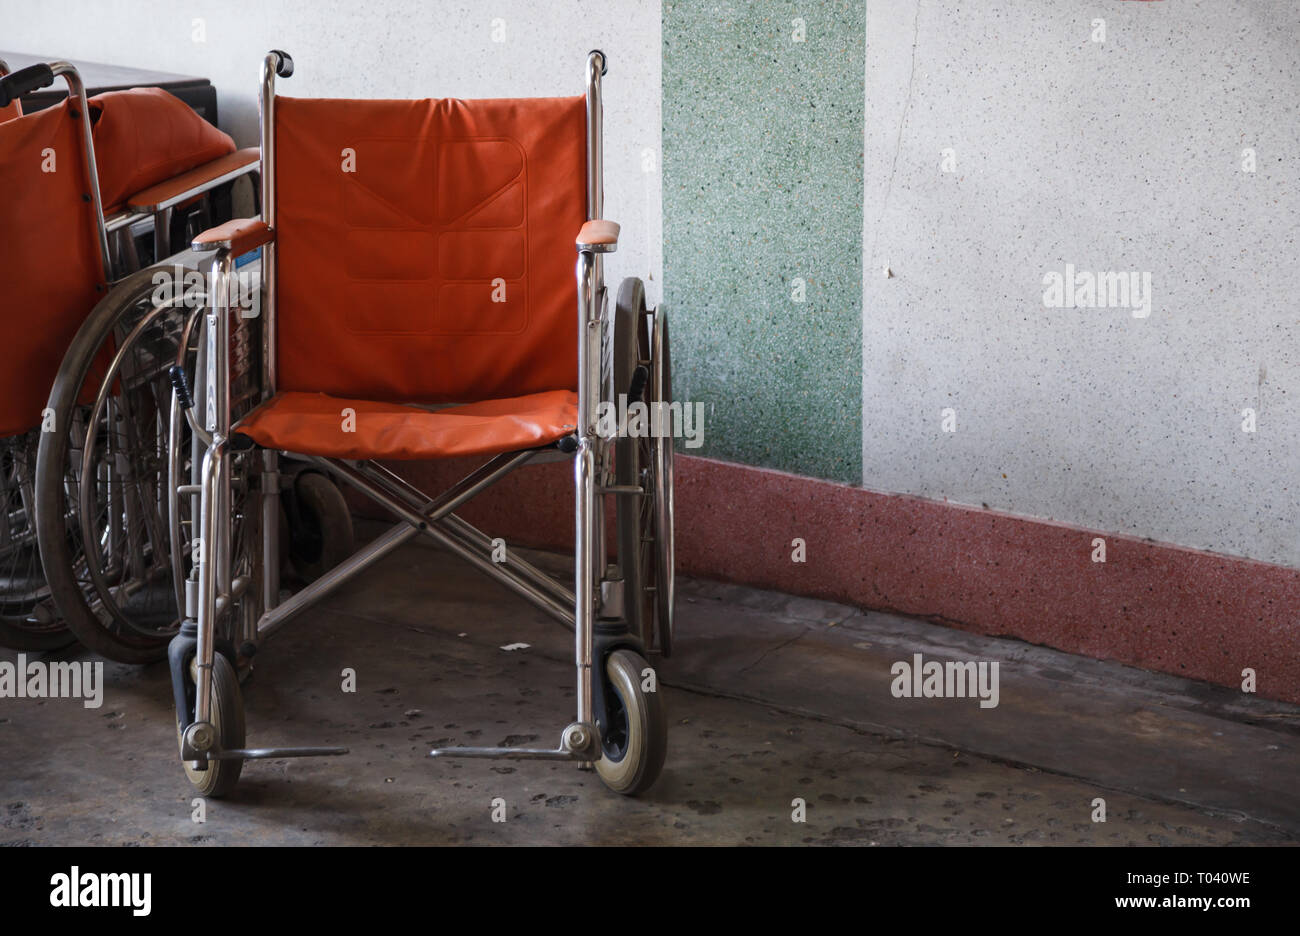 supporting wheelchairs for elderly, senior citizen, disabled in corner background, used when walking is difficult or impossible due to illness, injury - Stock Image